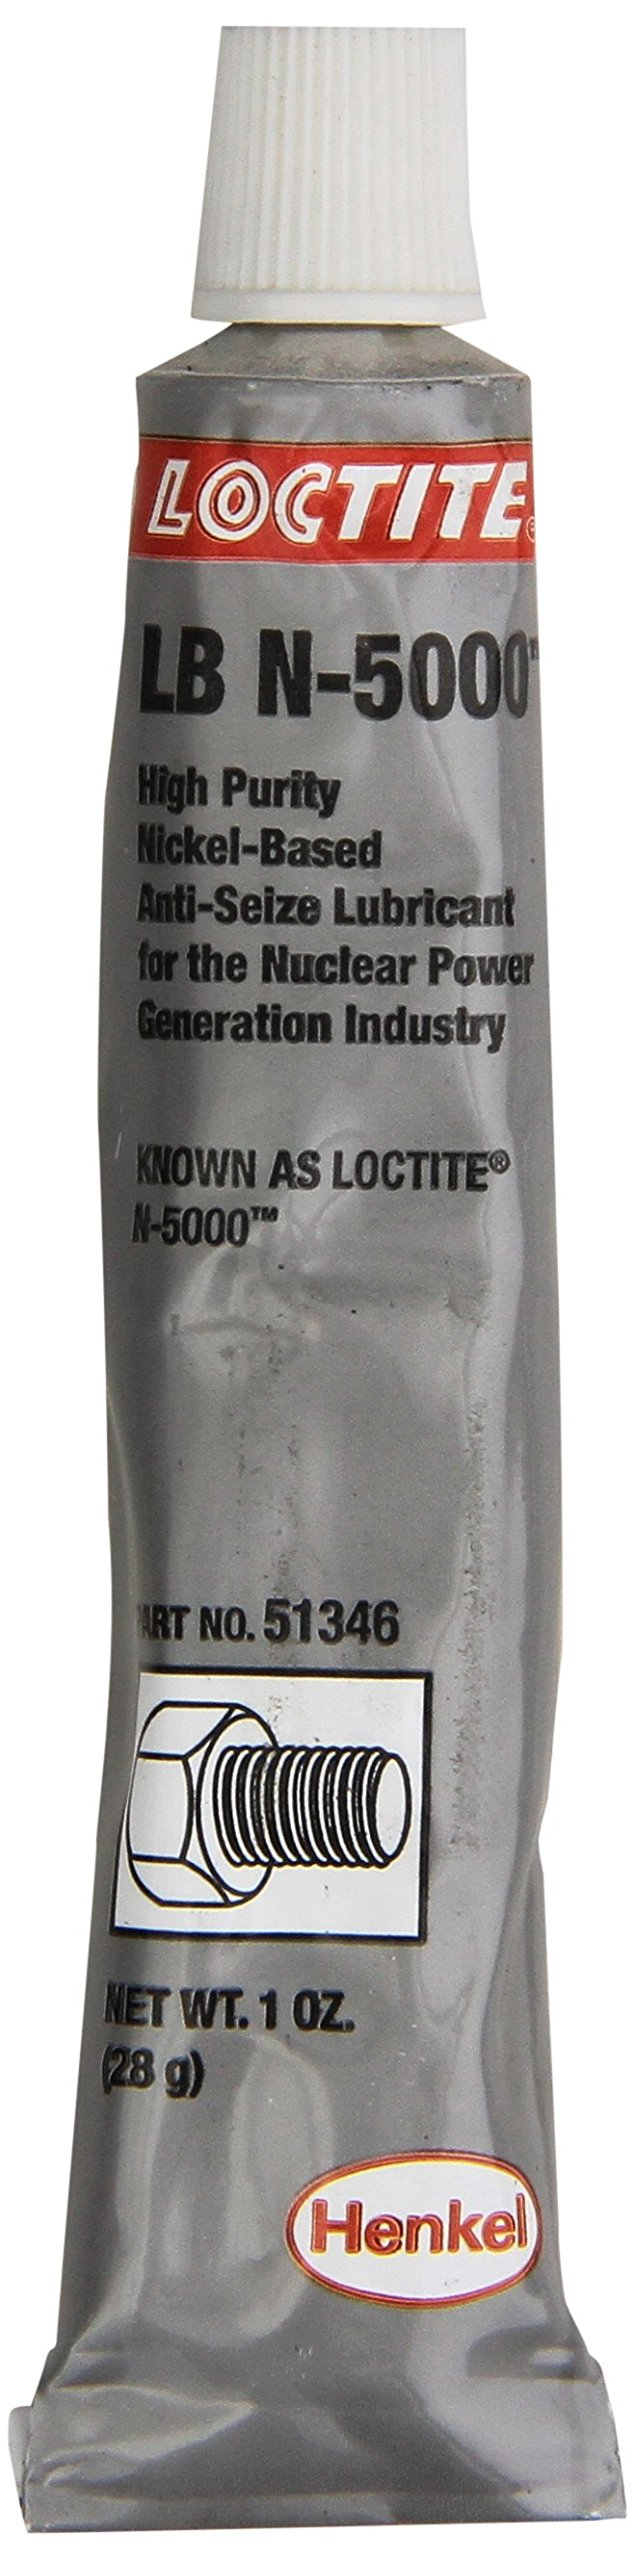 Loctite 51346 Silver LB N-5000 High-Purity Anti-Seize Lubricant, -20 Degree F Lower Temperature Rating to 2400 Degree F Upper Temperature Rating, 1 fl. oz. Tube